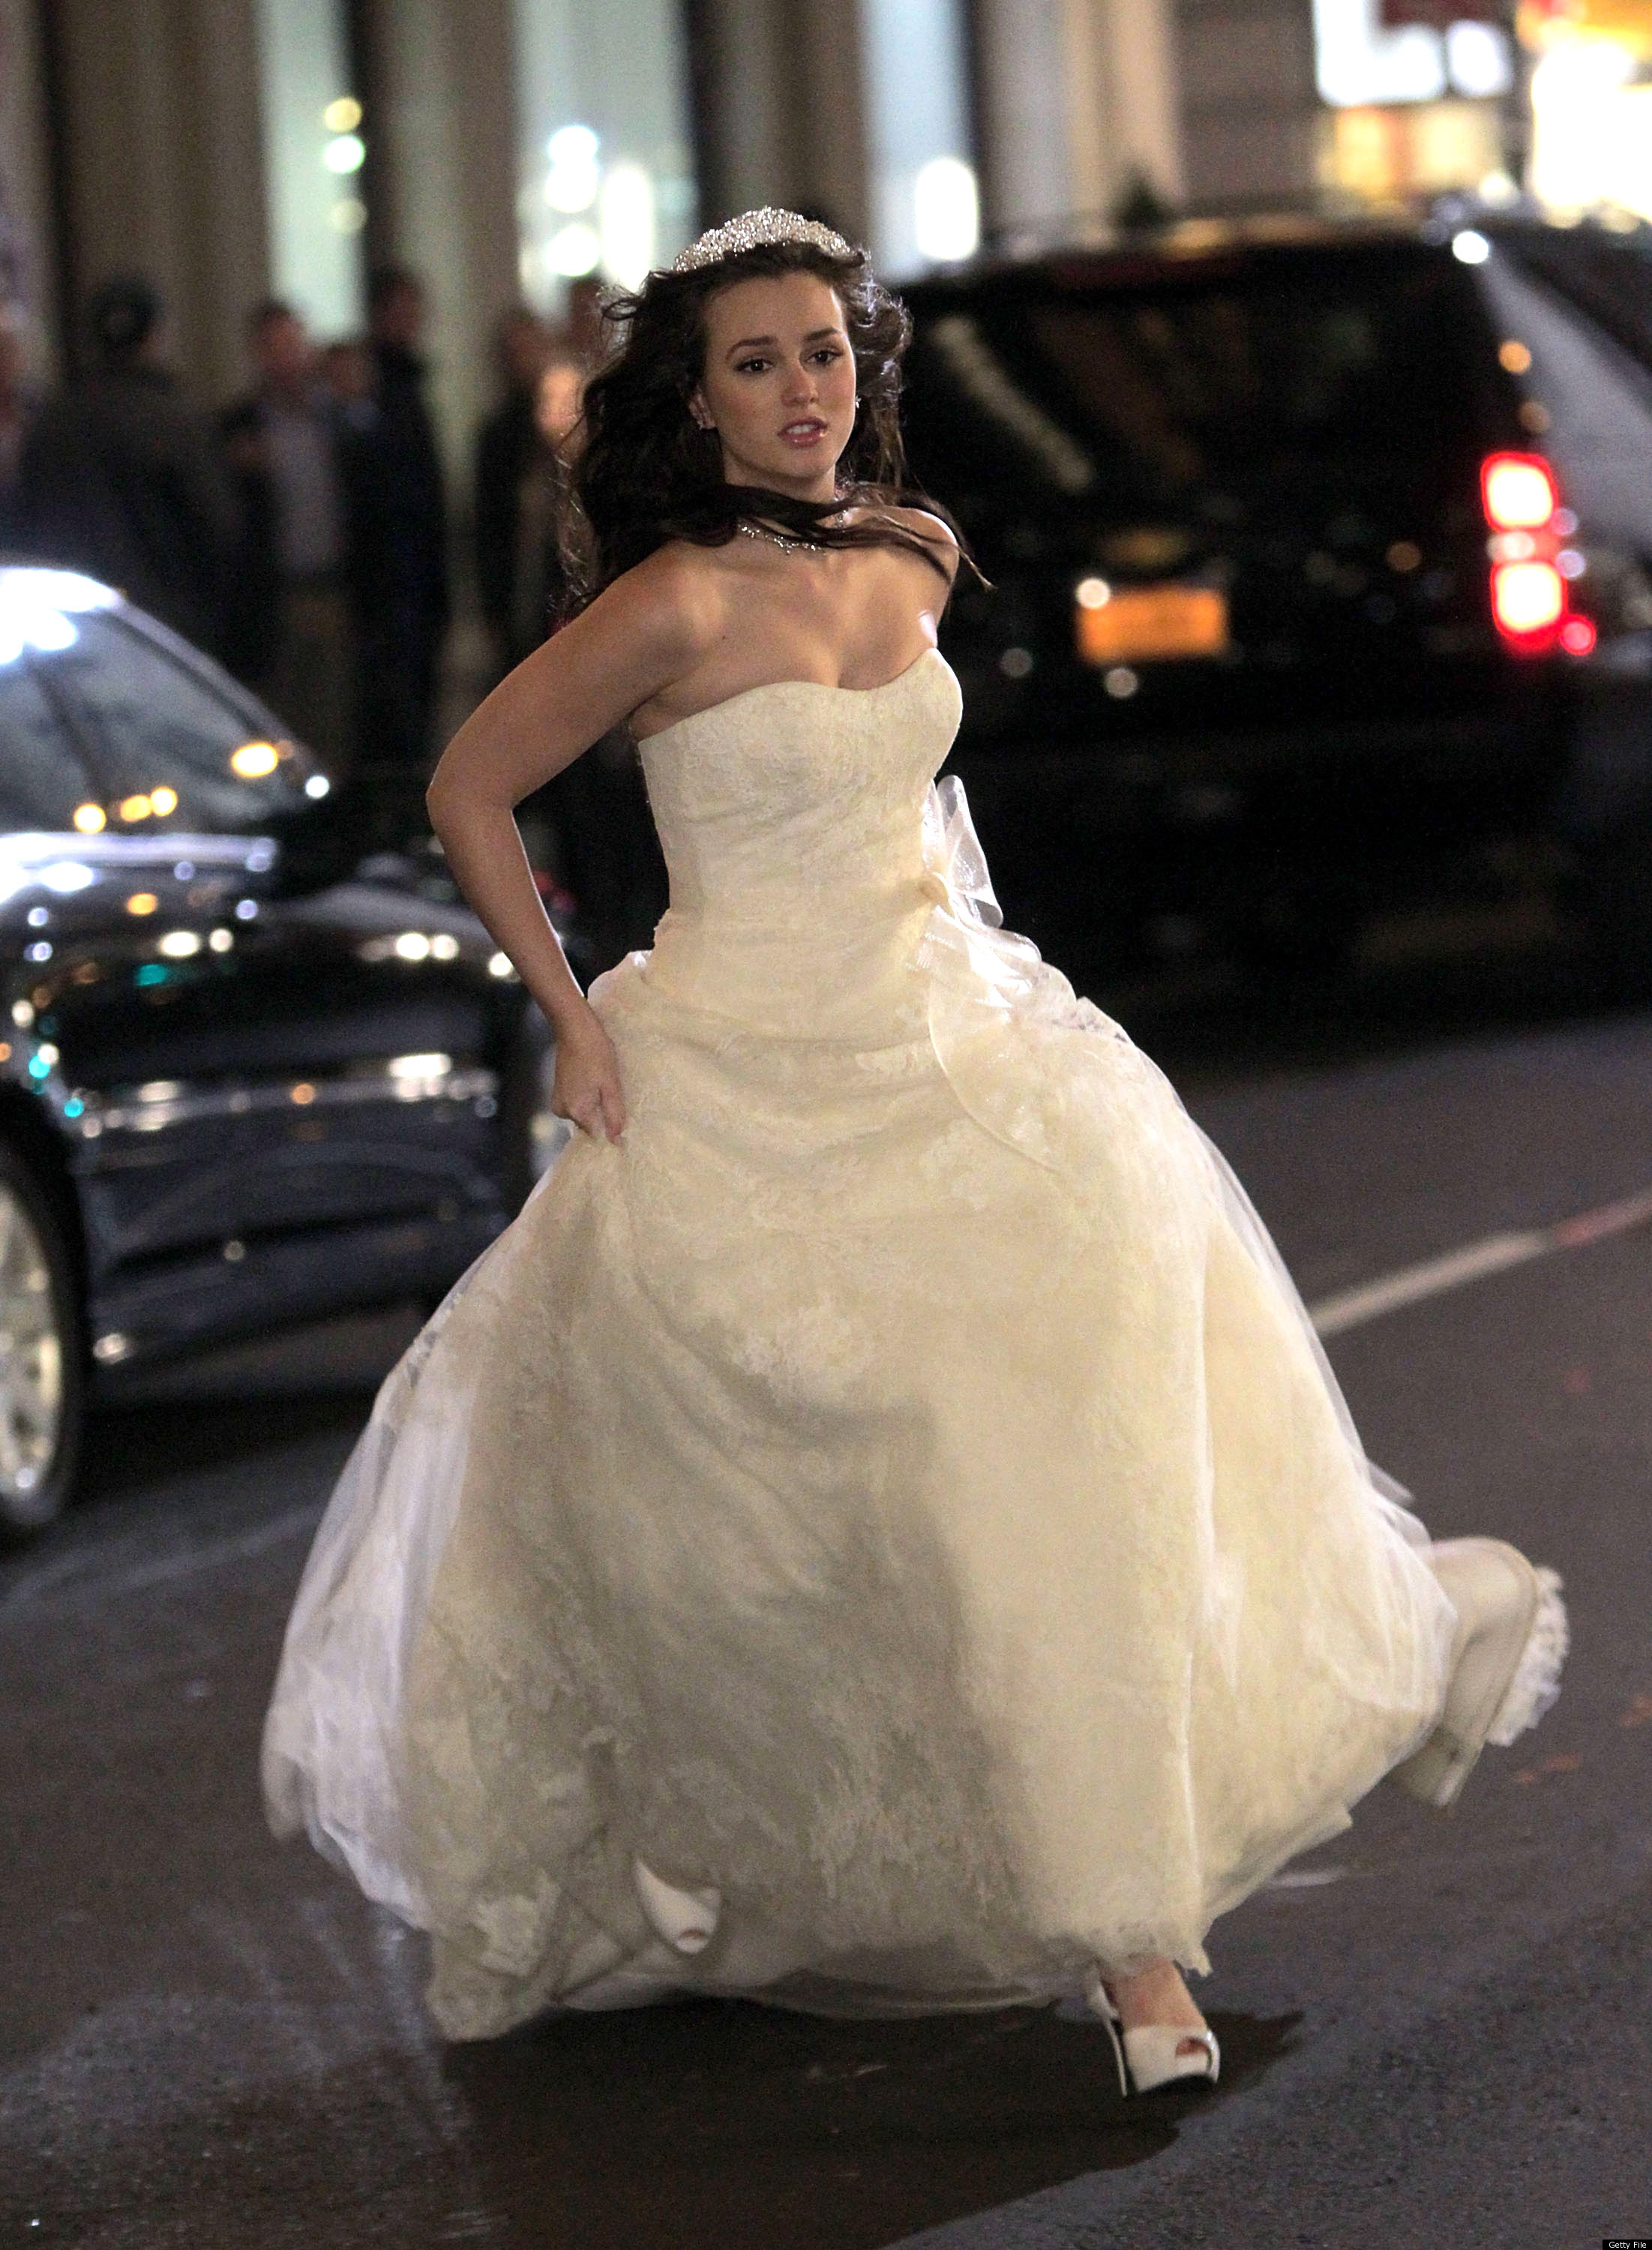 Blair Waldorfs Wedding Dress More Enviable Fictional Bridal Gowns PHOTOS